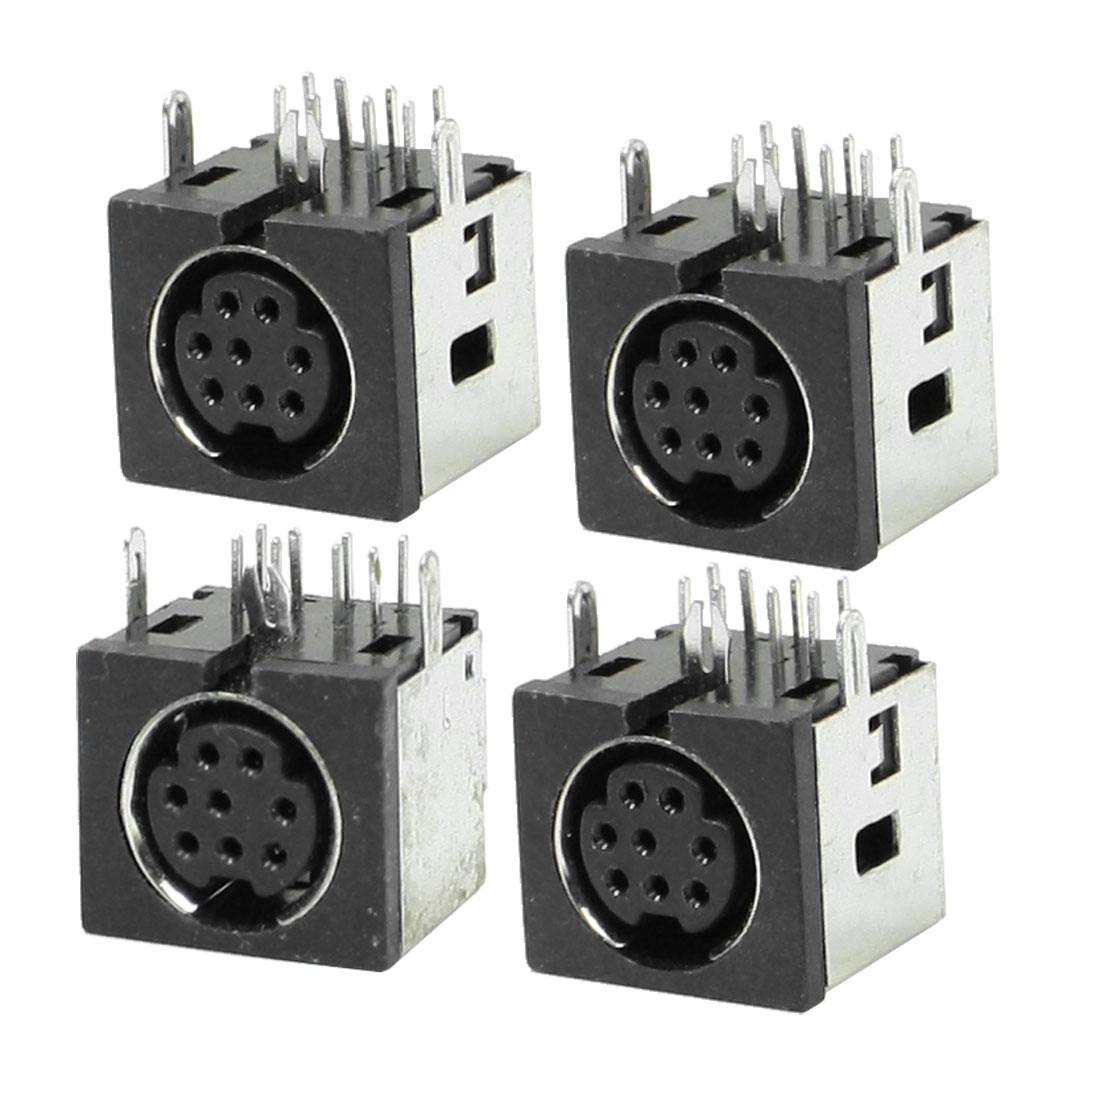 4 Pcs Metal Case S-video 8 Pin Female PCB Mount Mini Din Sockets